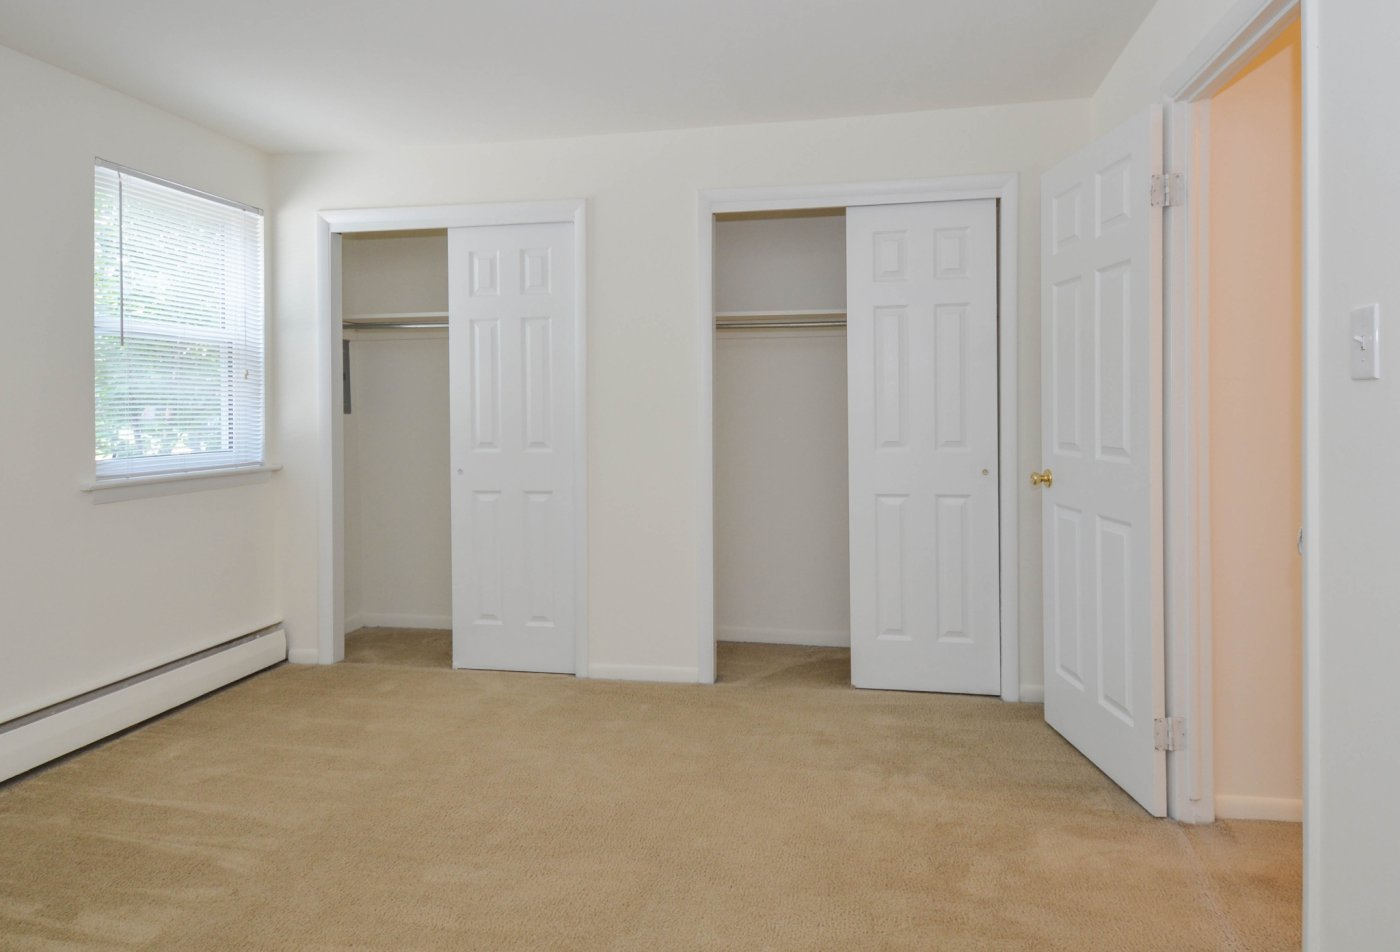 Spacious Master Bedroom | Apartments Homes for rent in Aston, PA | Concord Court Apartments